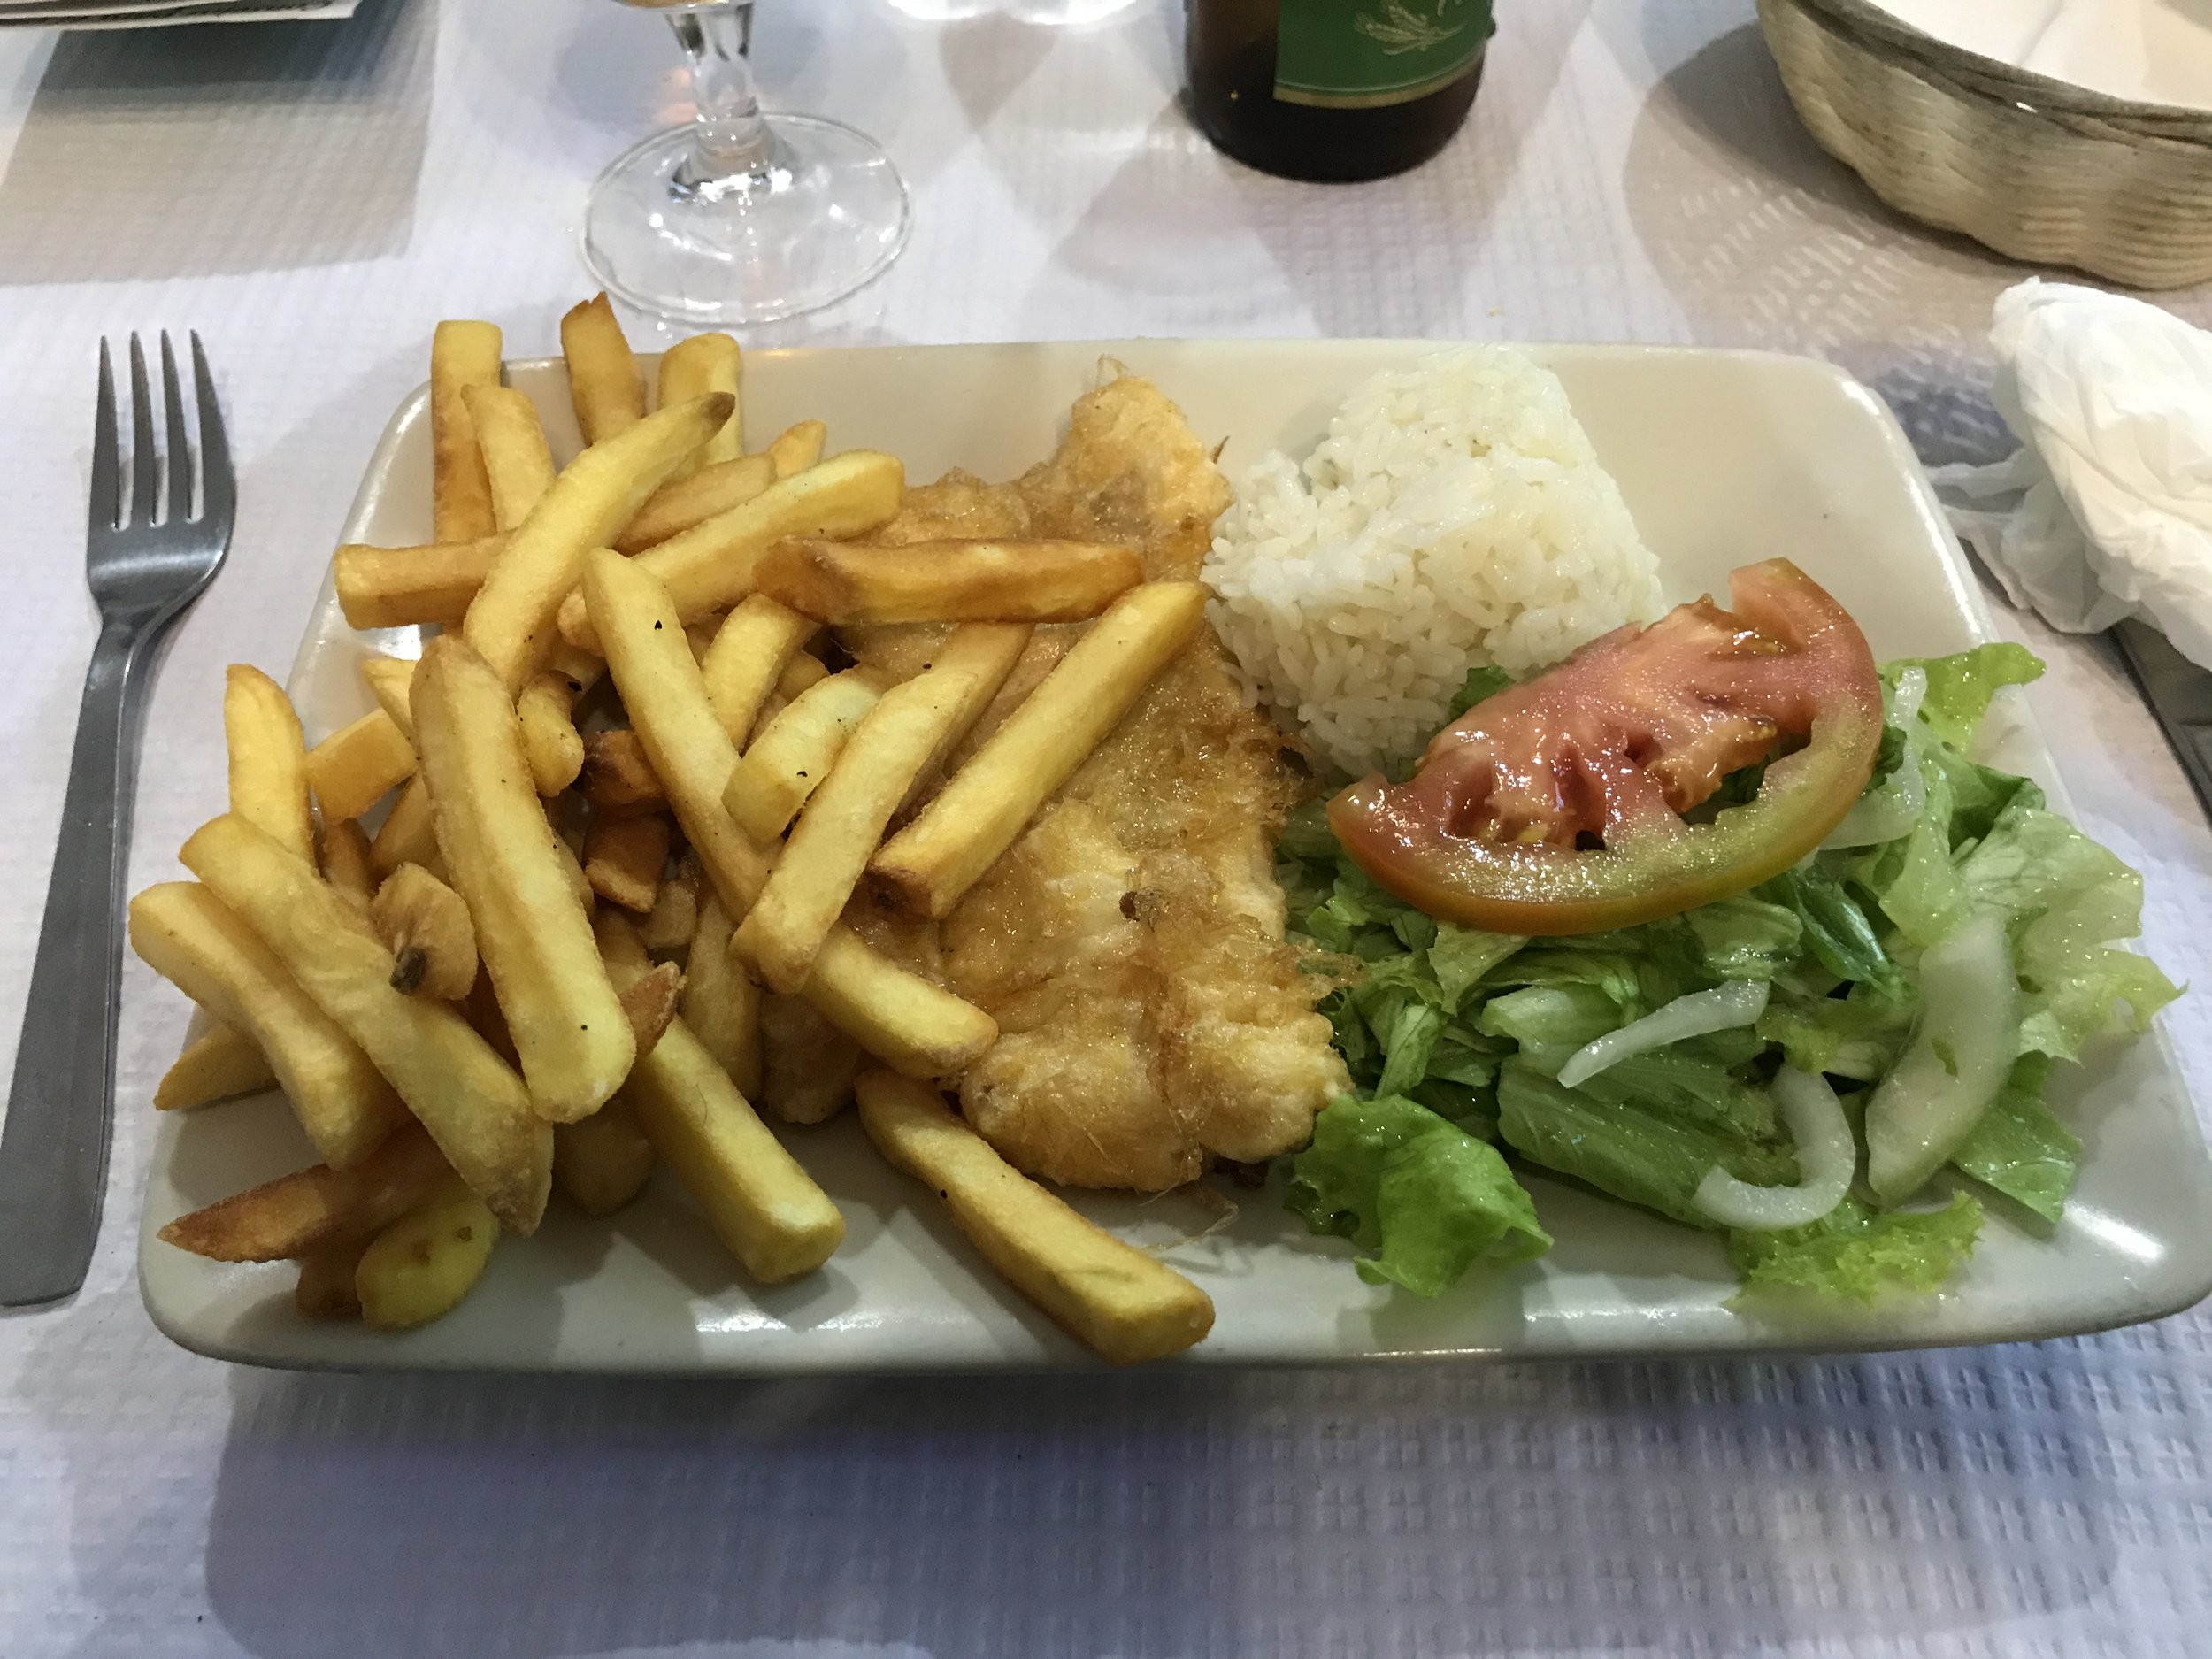 Entree for the 5 euro menu of the day meal.